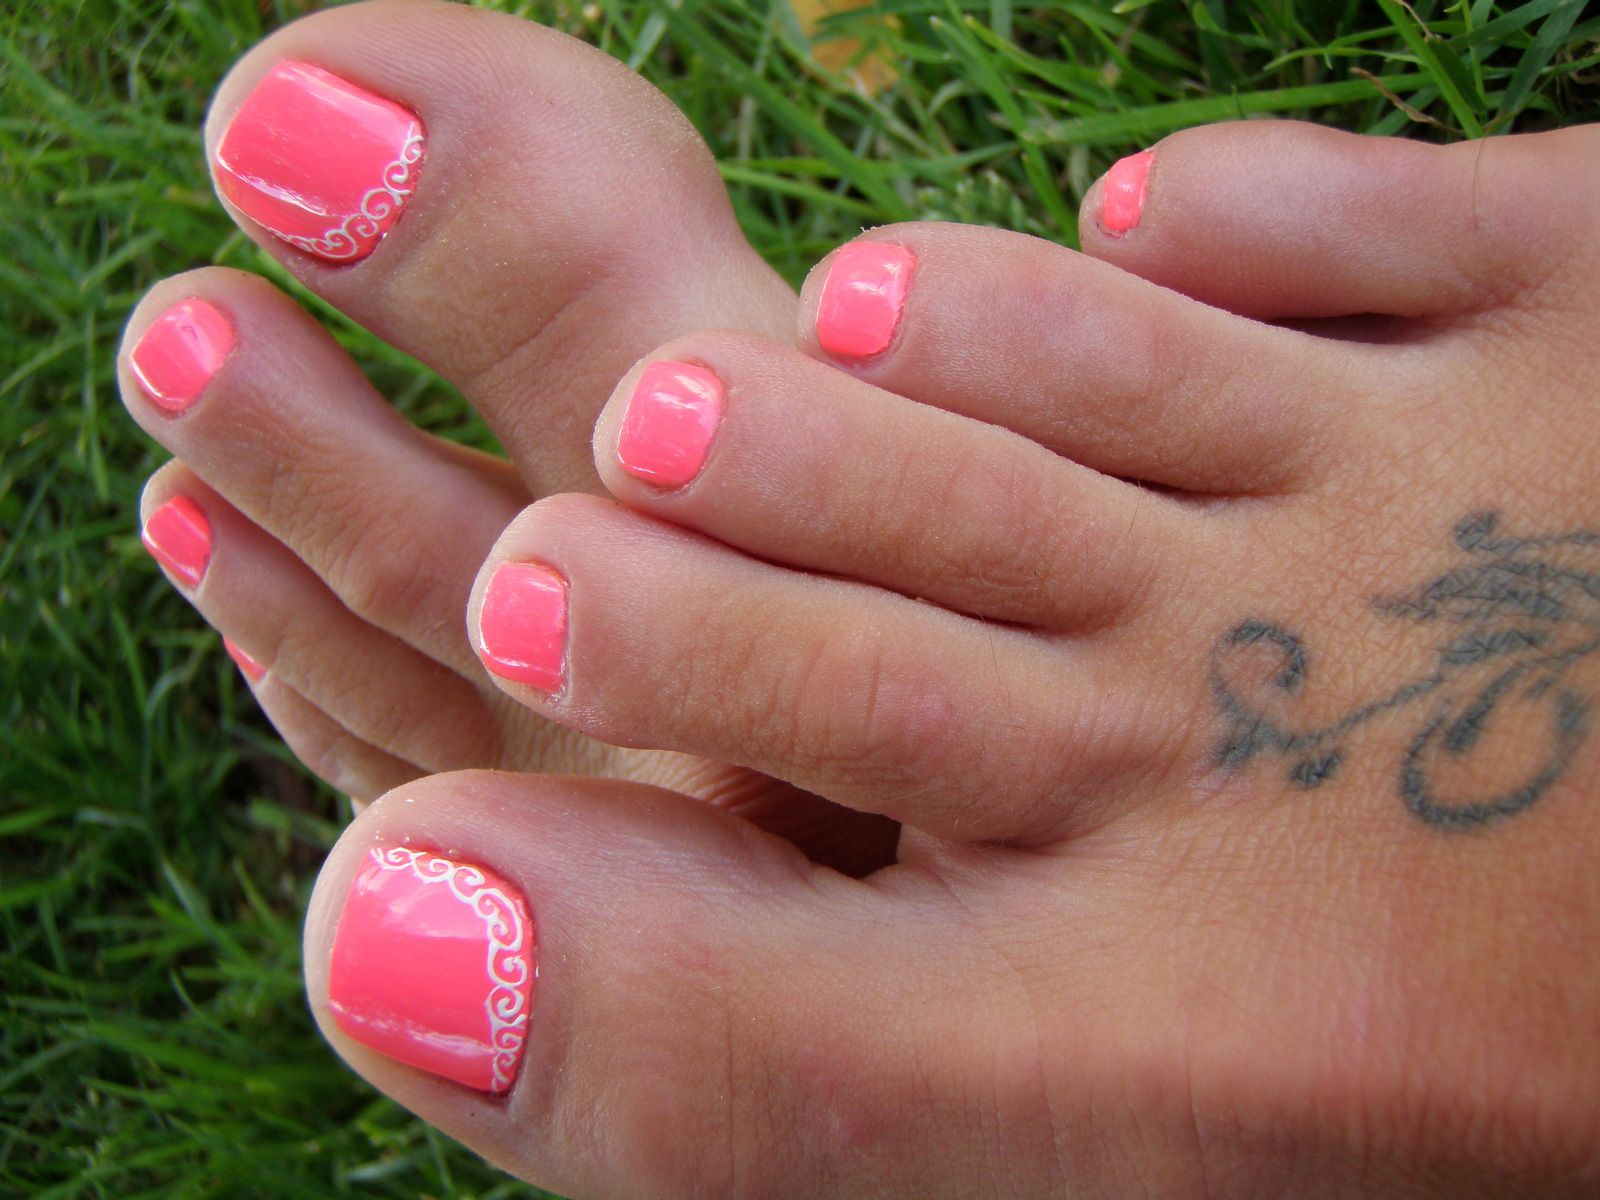 Vernis permanent&quot&#x3B;Sweet flamingo&quot&#x3B;Onglemod